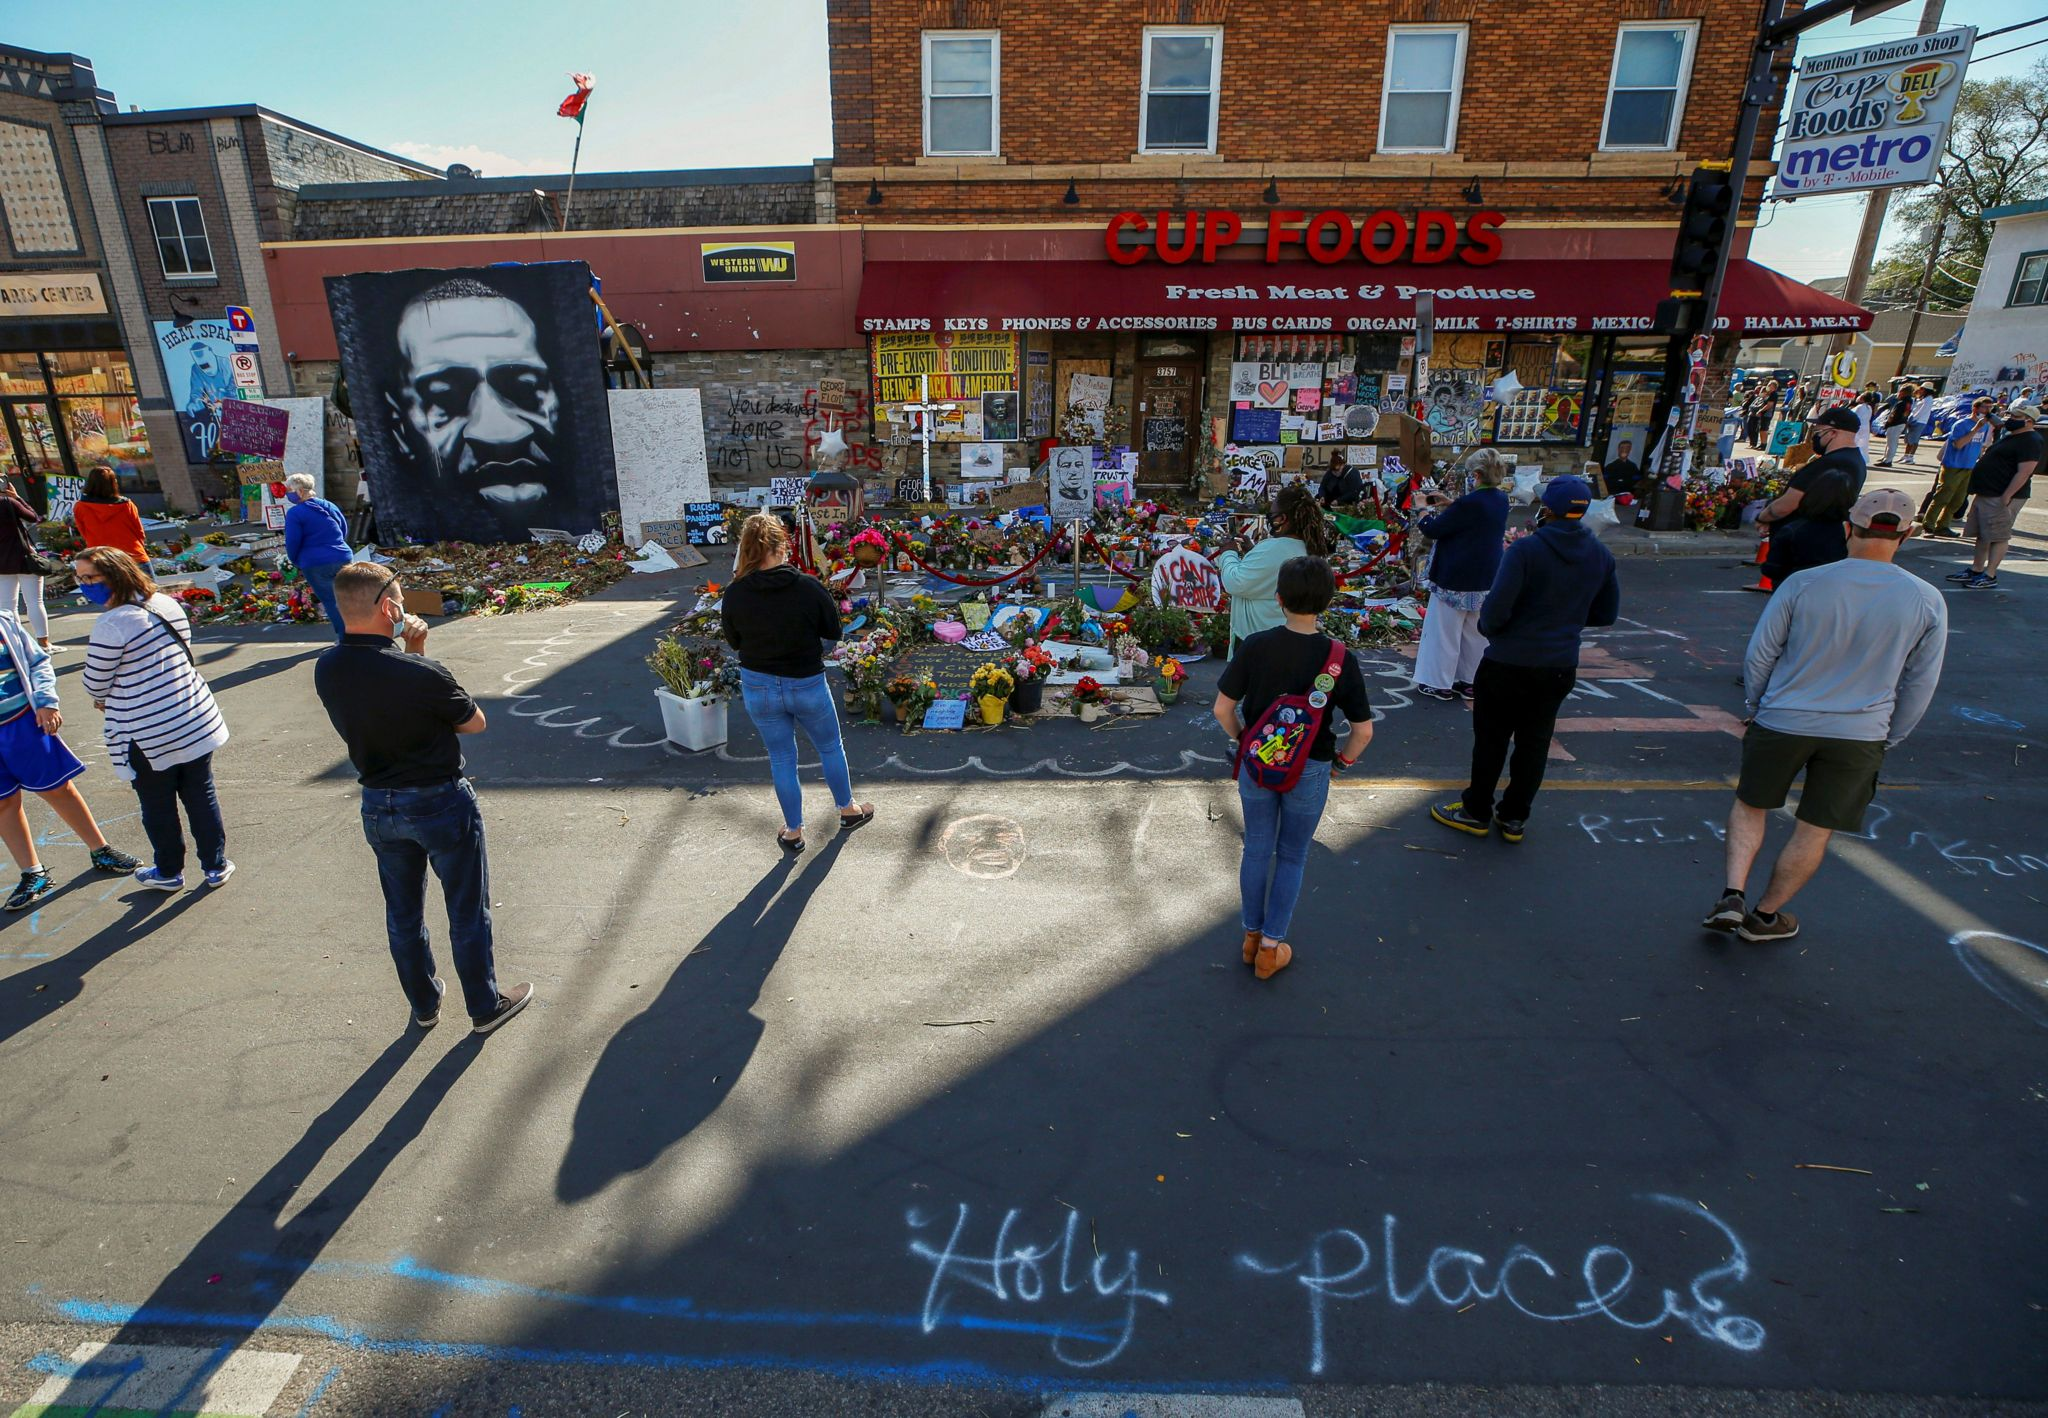 Visitors look at a memorial at the site of the arrest of George Floyd, who died while in police custody, in Minneapolis, Minnesota, US